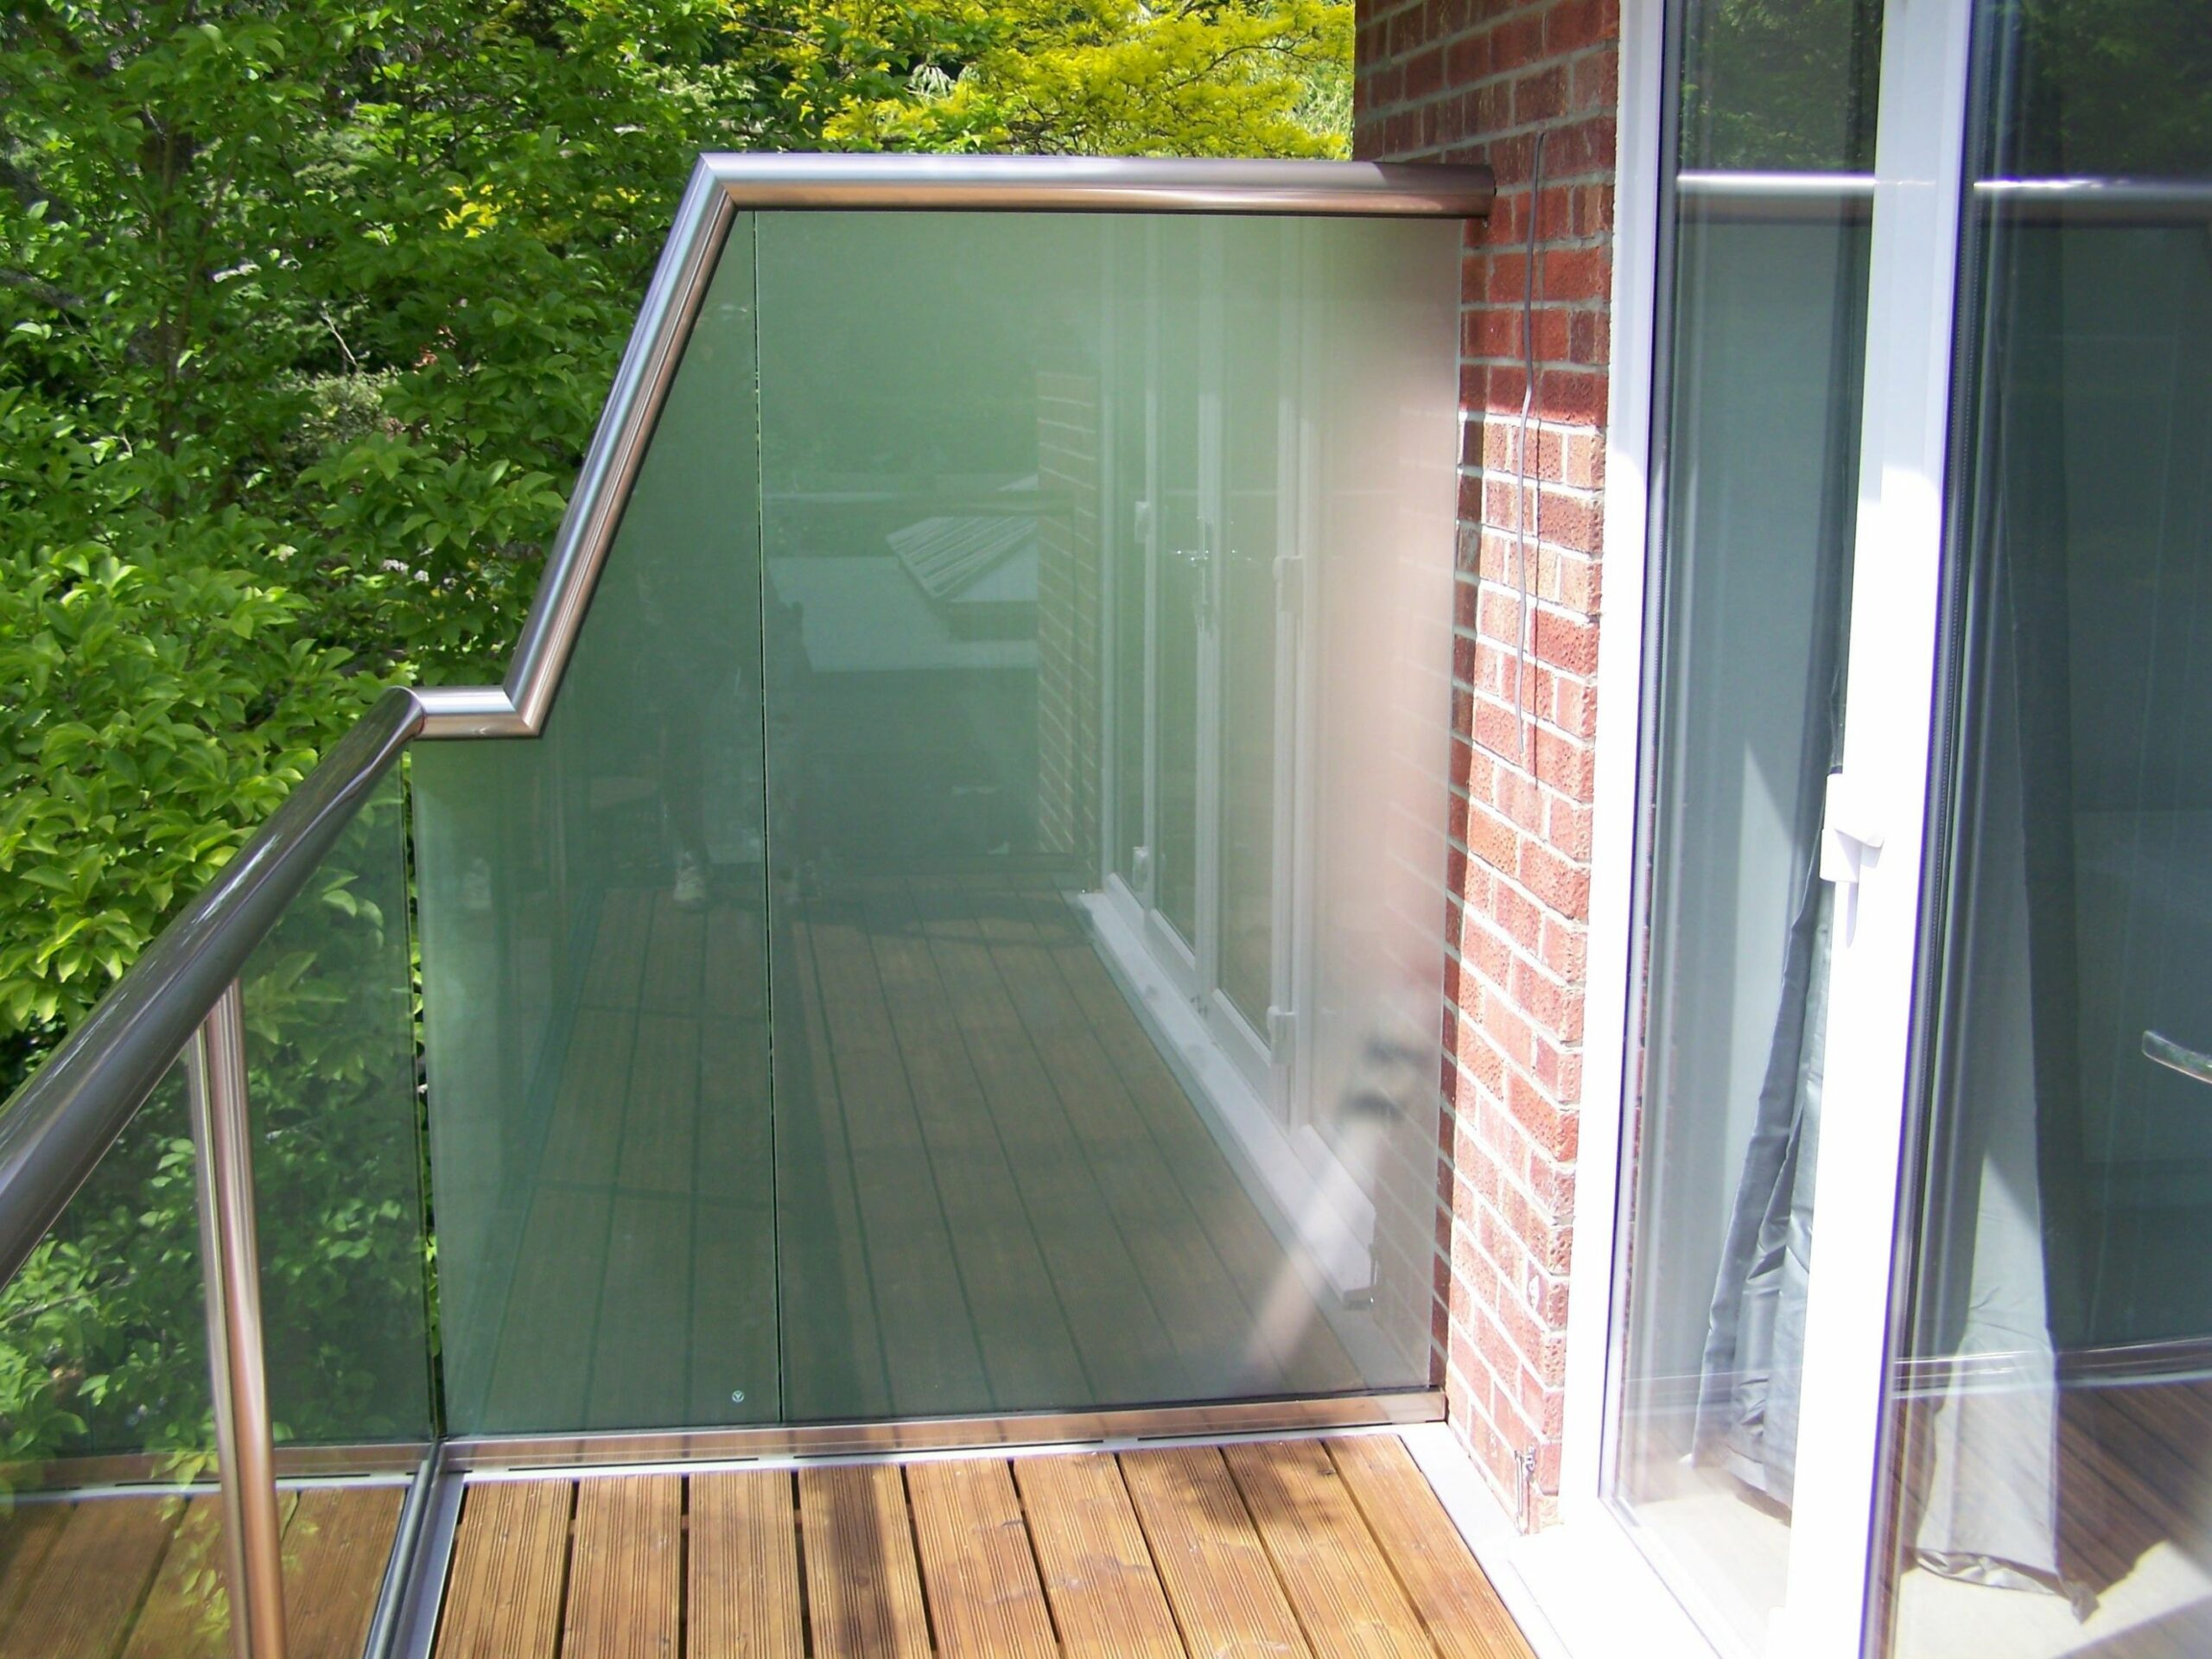 Glass Balustrade with Privacy Screen | Balcony privacy, Balcony ...